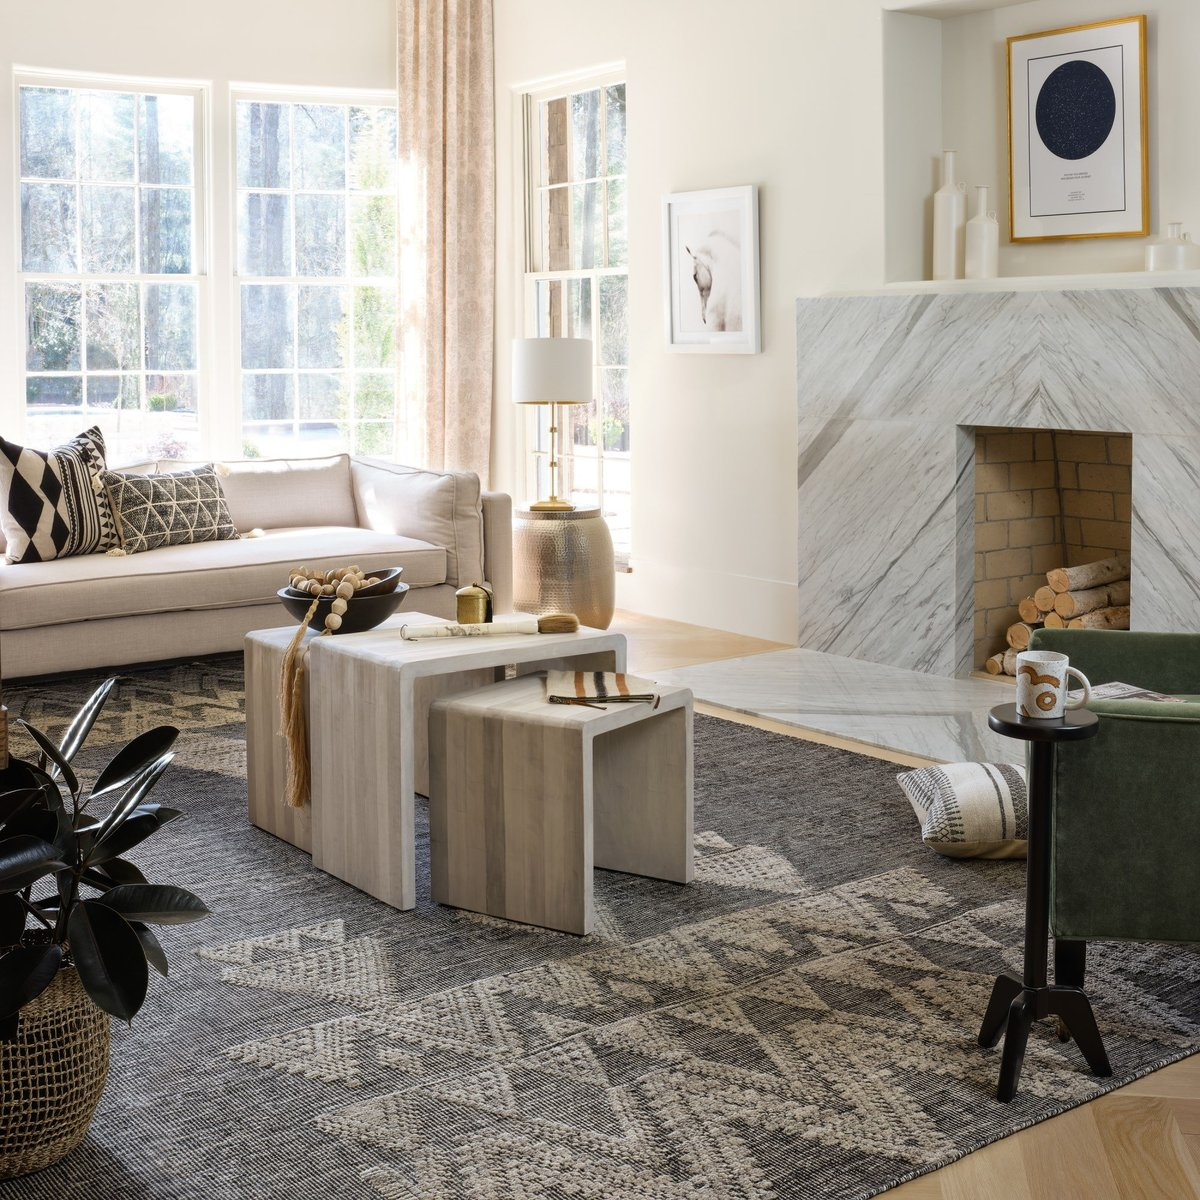 Marvelous Marble - Formal Living Room Decorating Ideas